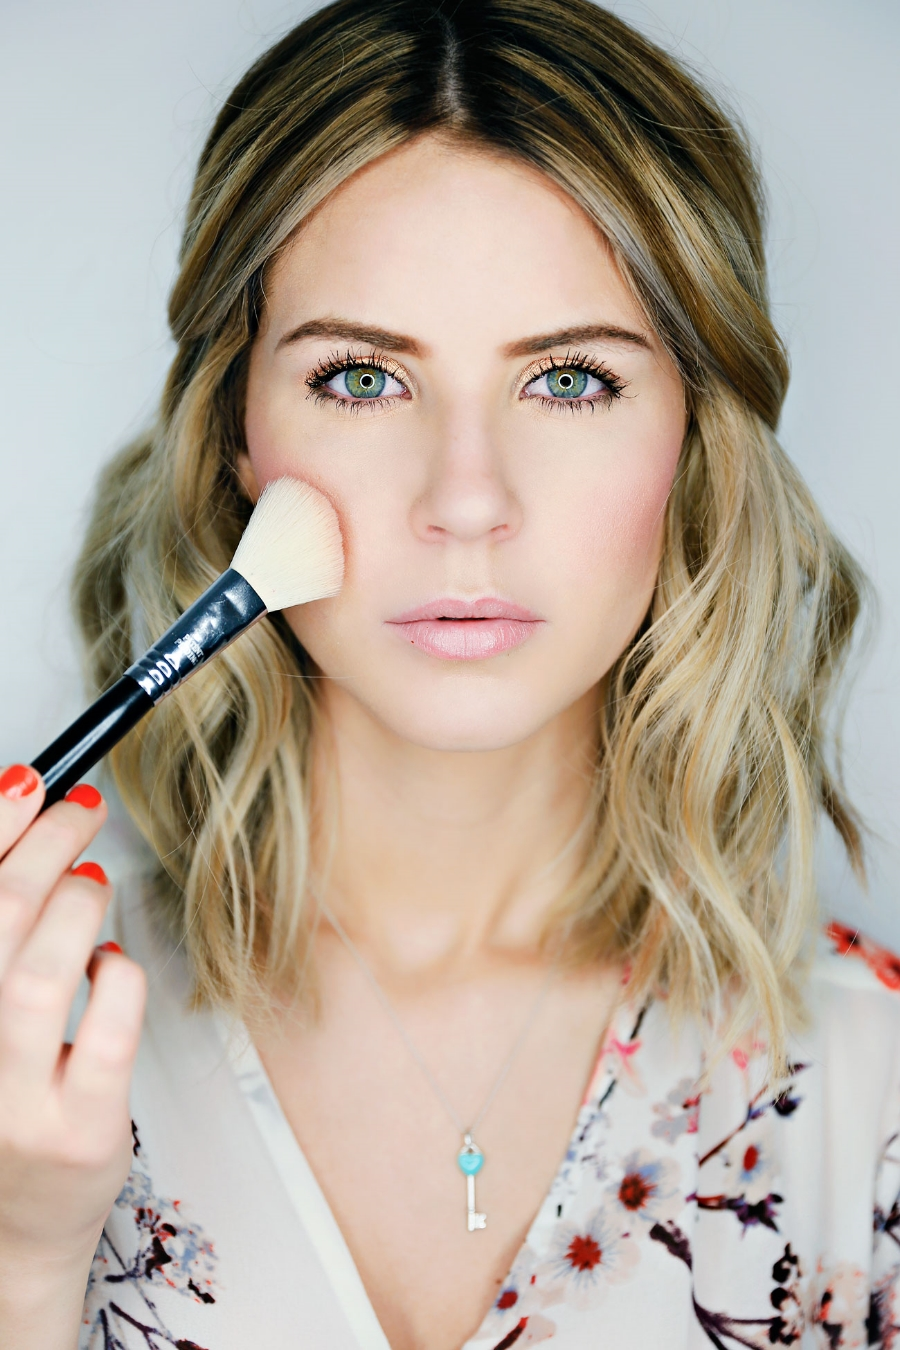 Take a  Sigma F40 brush and apply your blush to the apples of your cheeks, blending it into the bronzer. Again, I'm all about peach tones so my go to blush lately is  Style by Mac.  It has a very slight shimmer to it to really help make your skin look glowing.